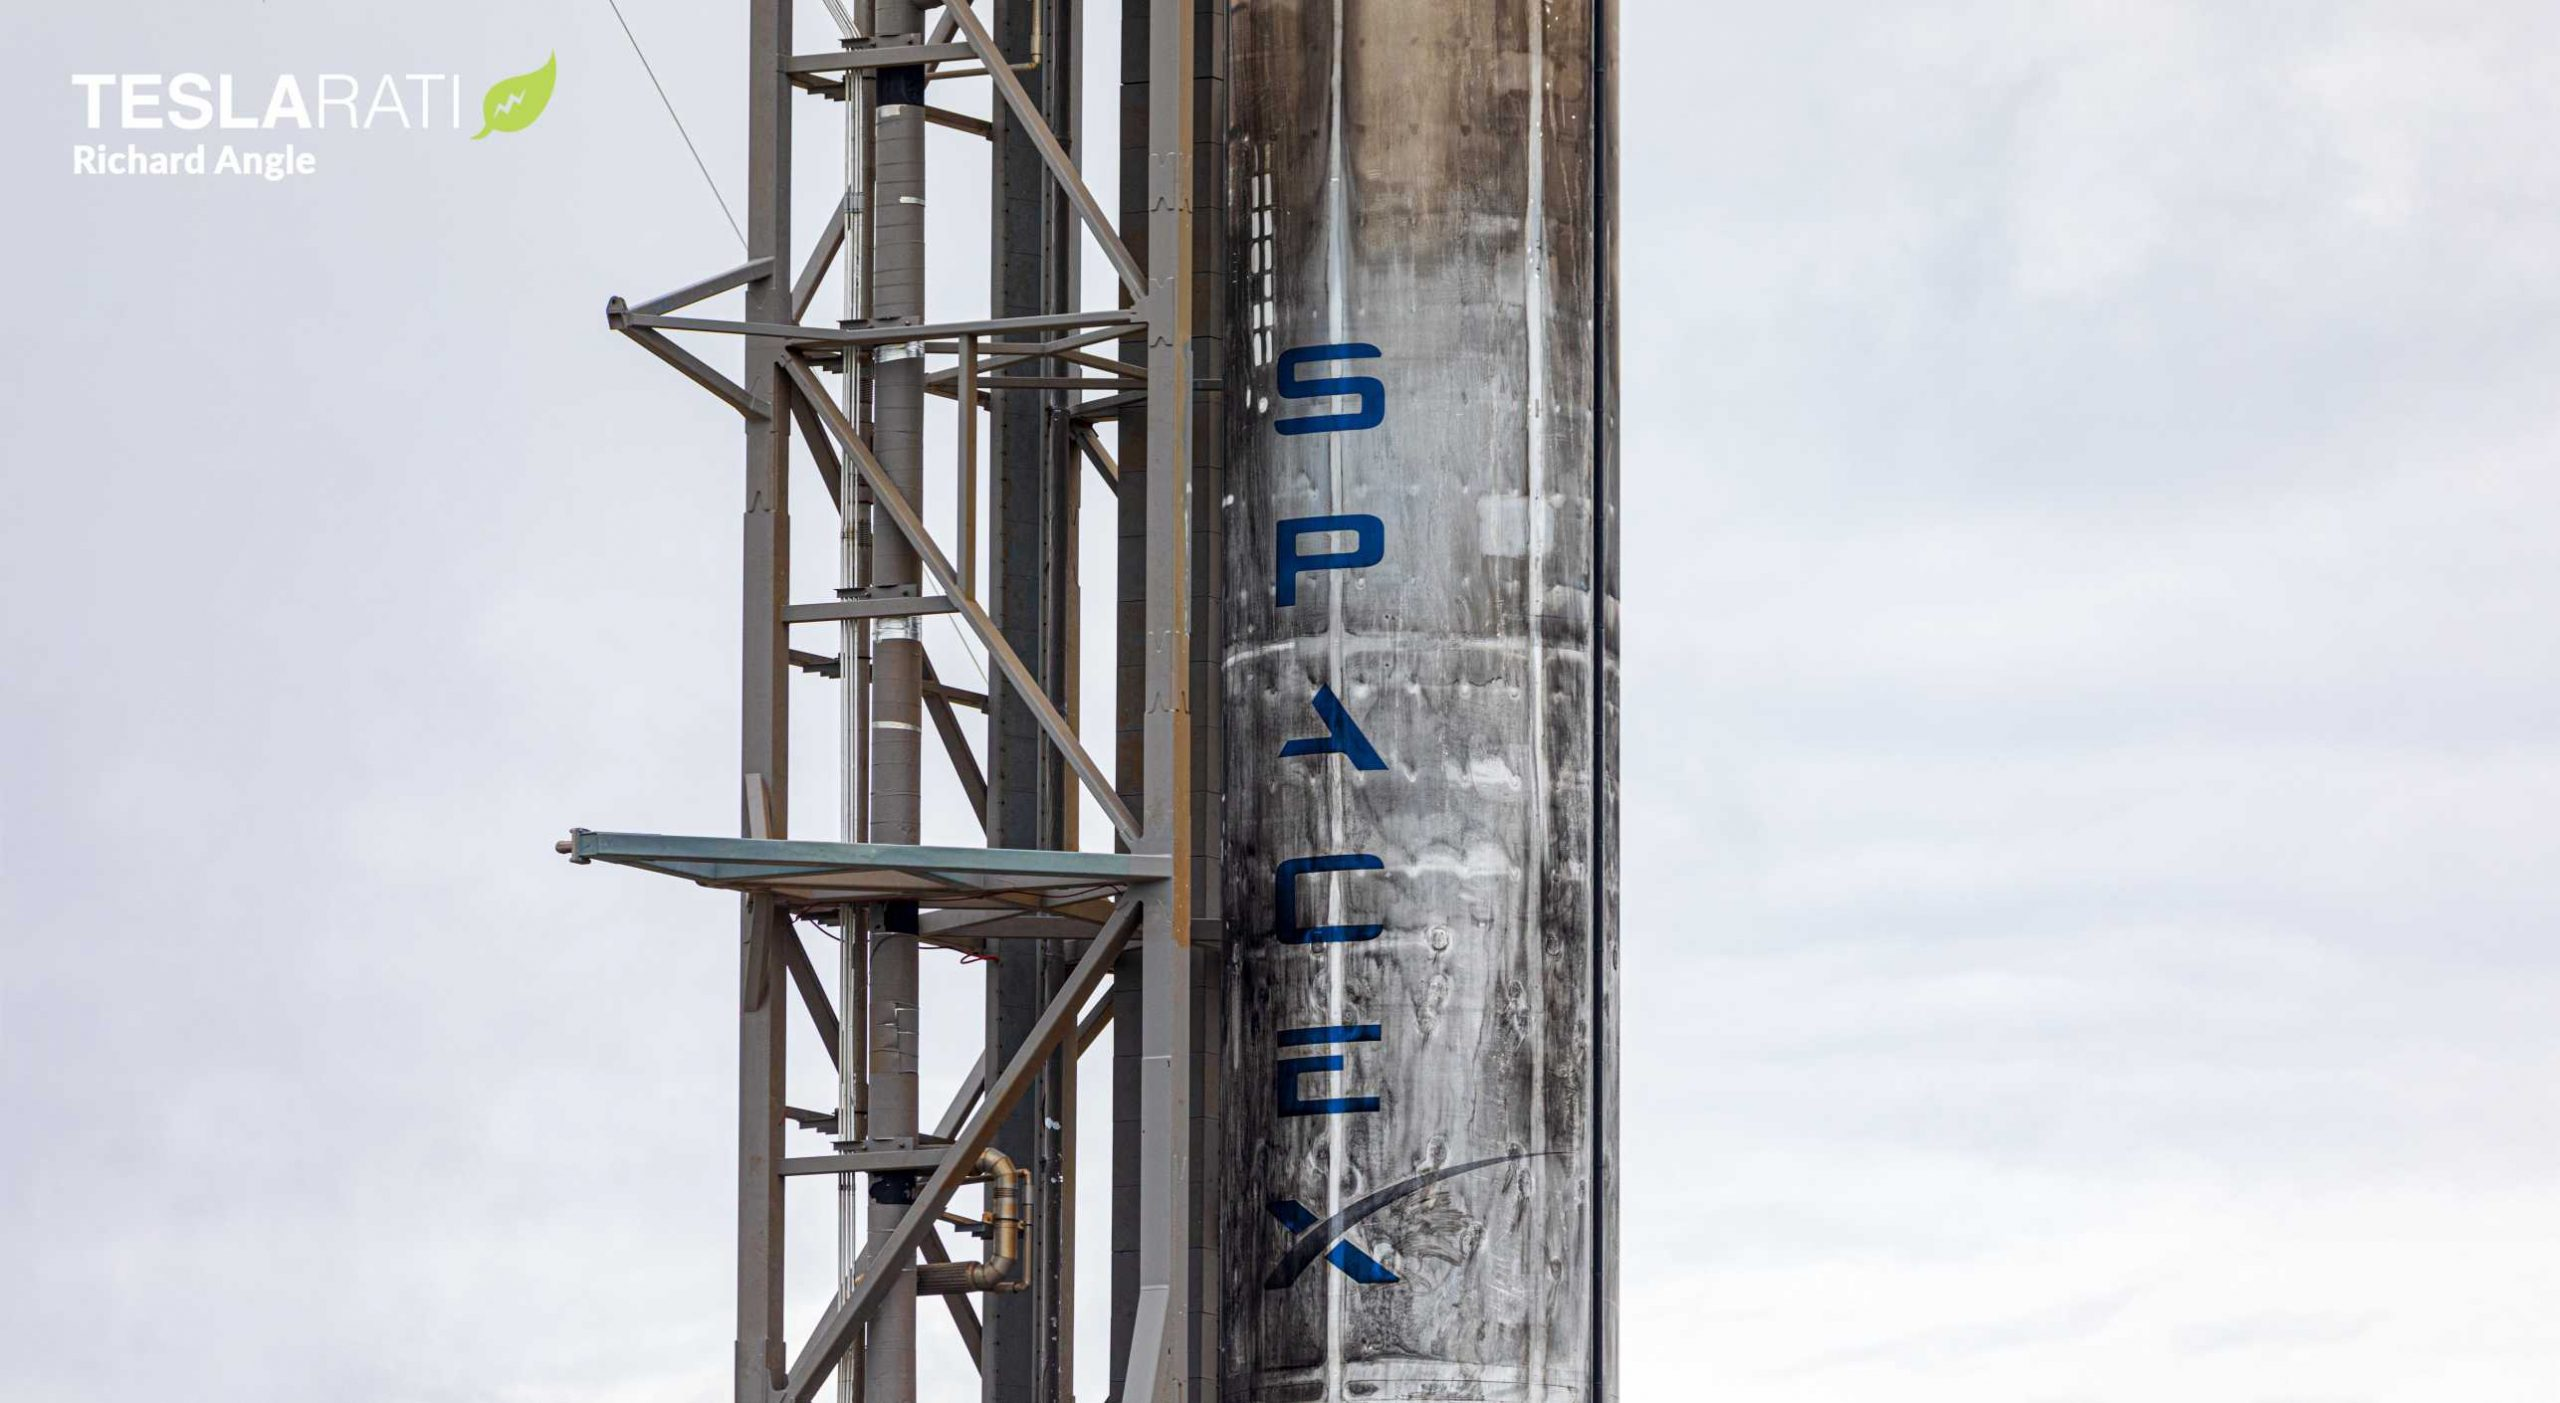 Starlink-8 Falcon 9 B1049 LC-40 060320 (Richard Angle) prelaunch (5) (c)